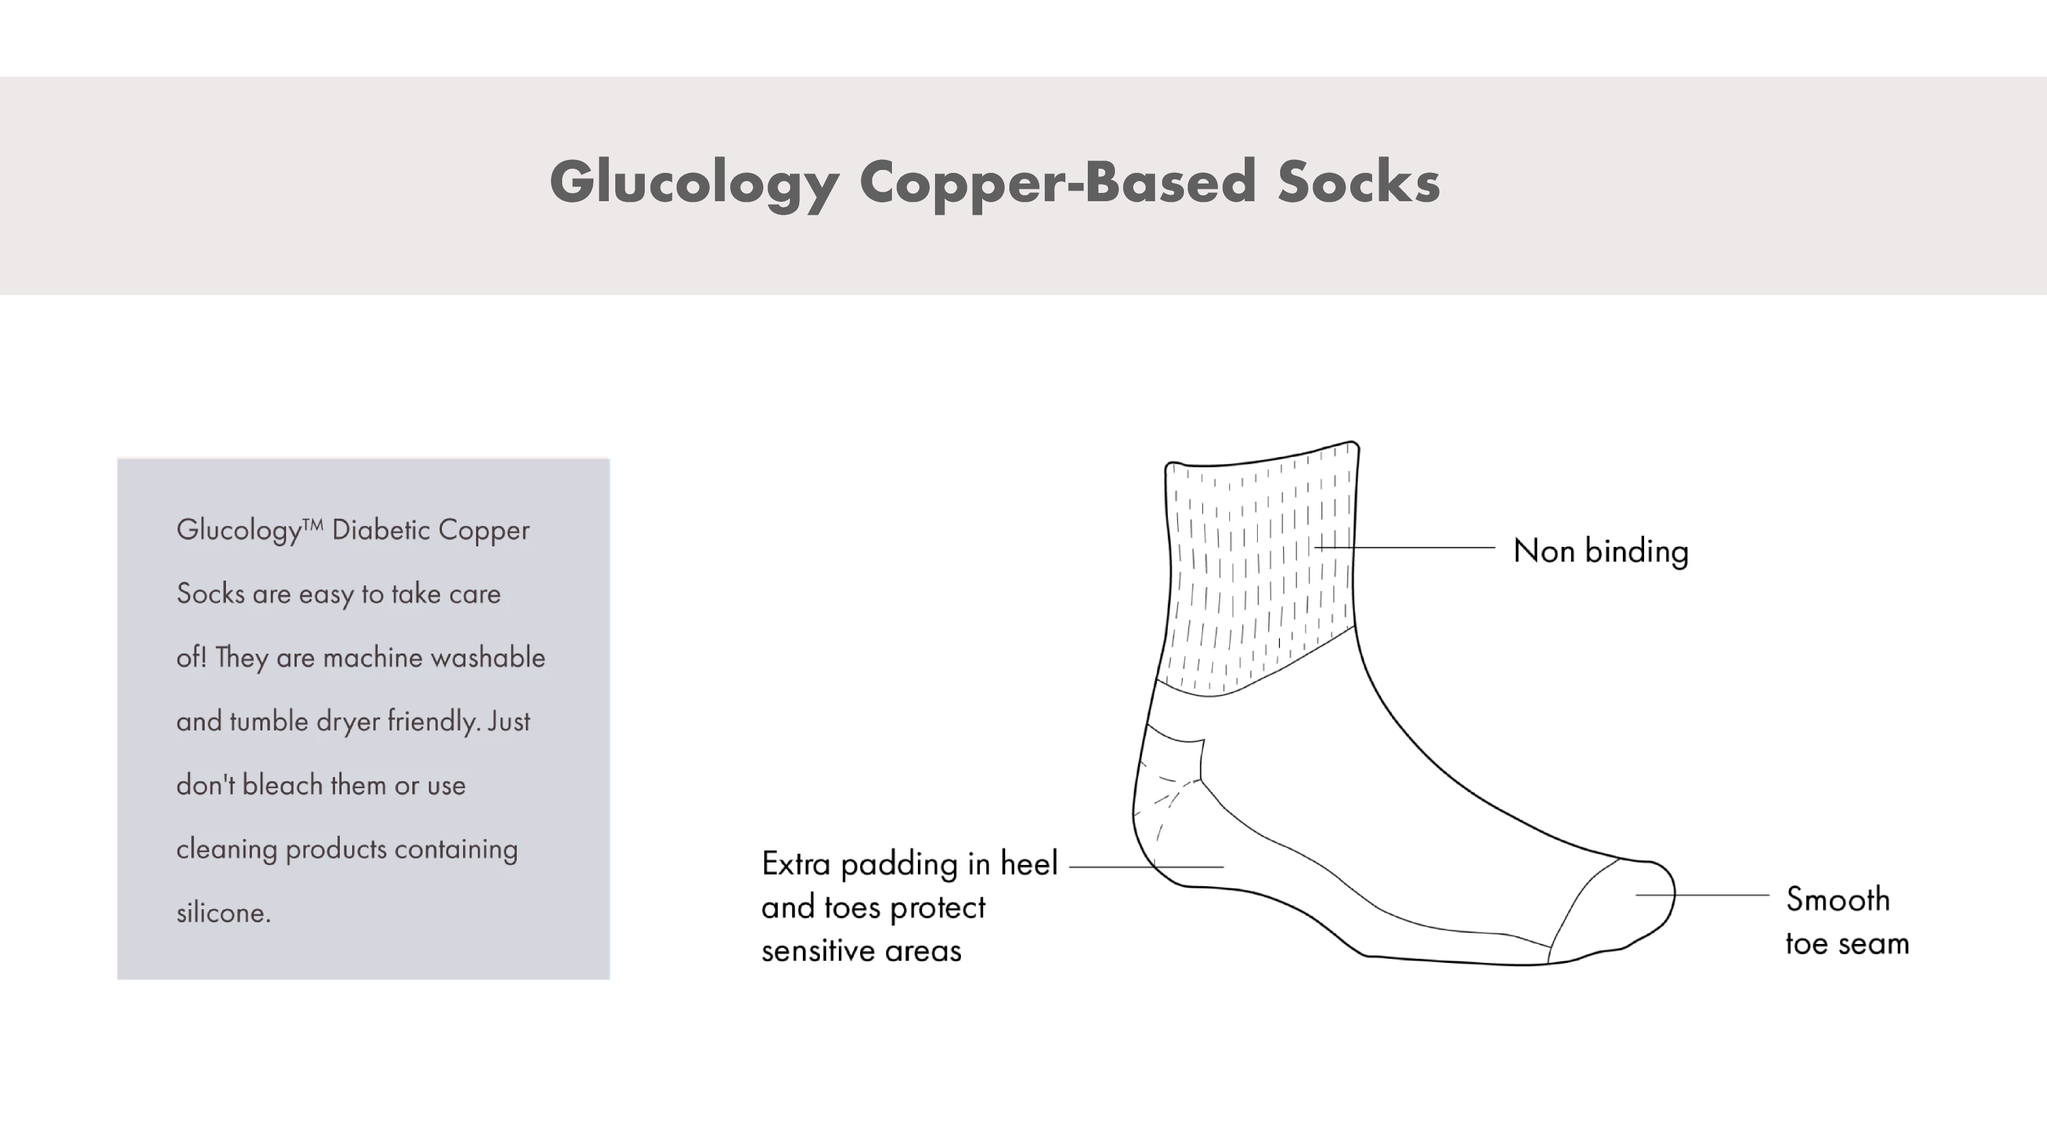 Diabetes support products accessories copper based socks instructions